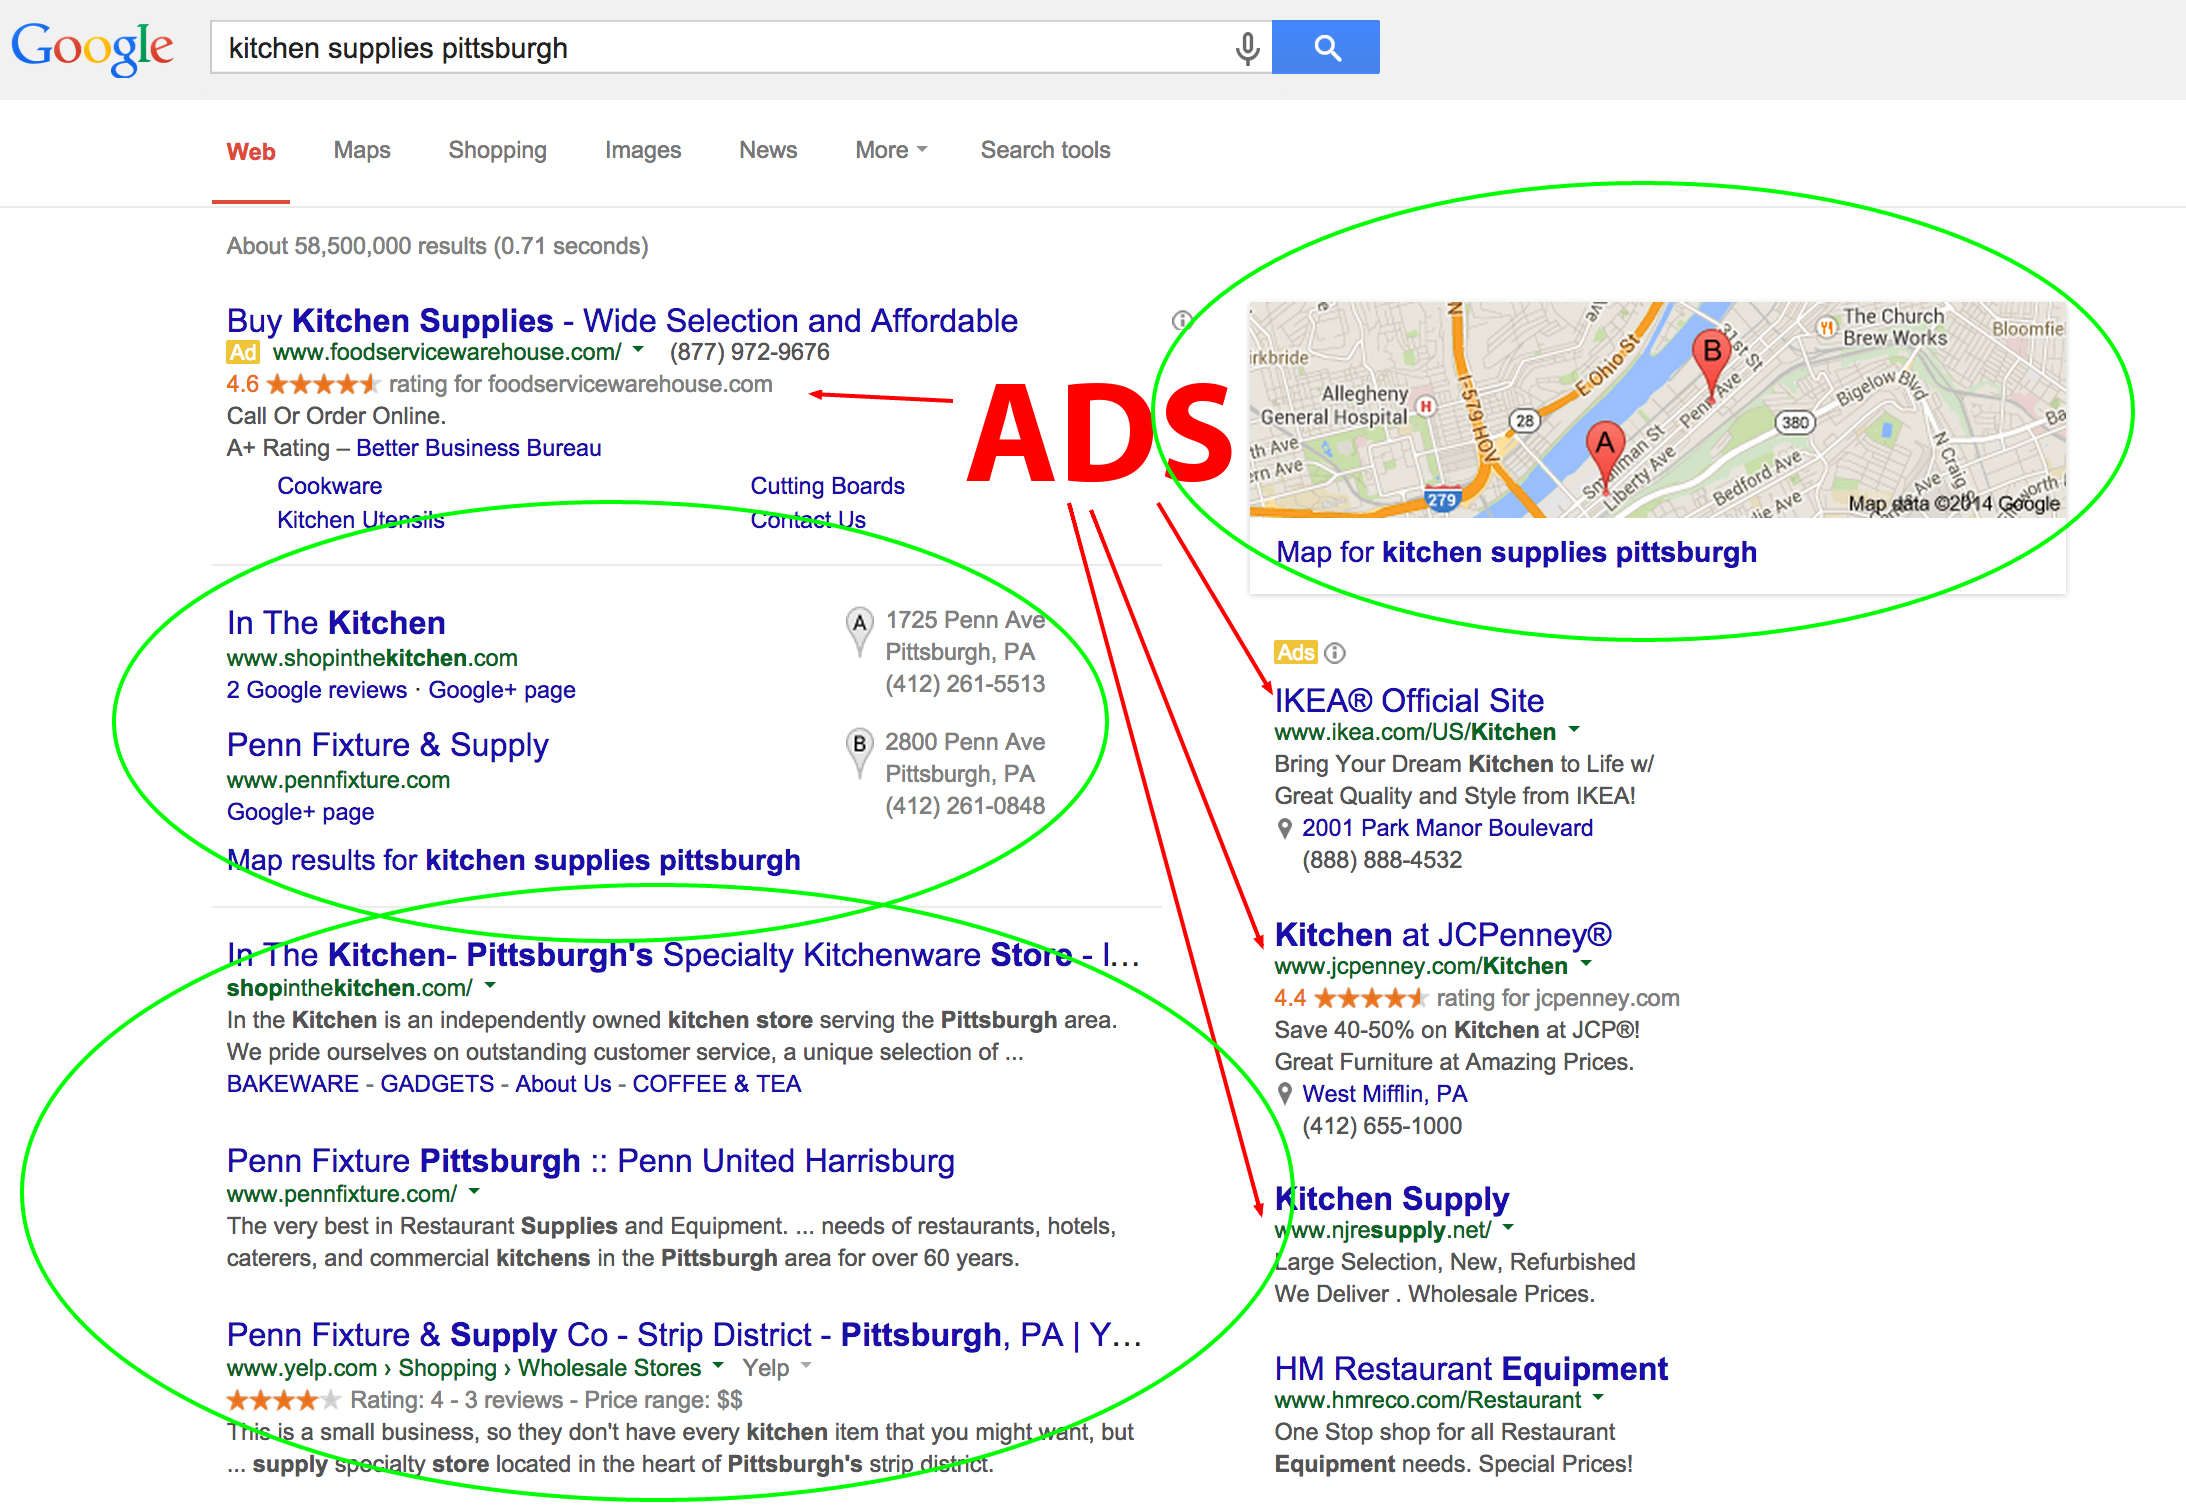 Showing how local search narrows down the results greatly